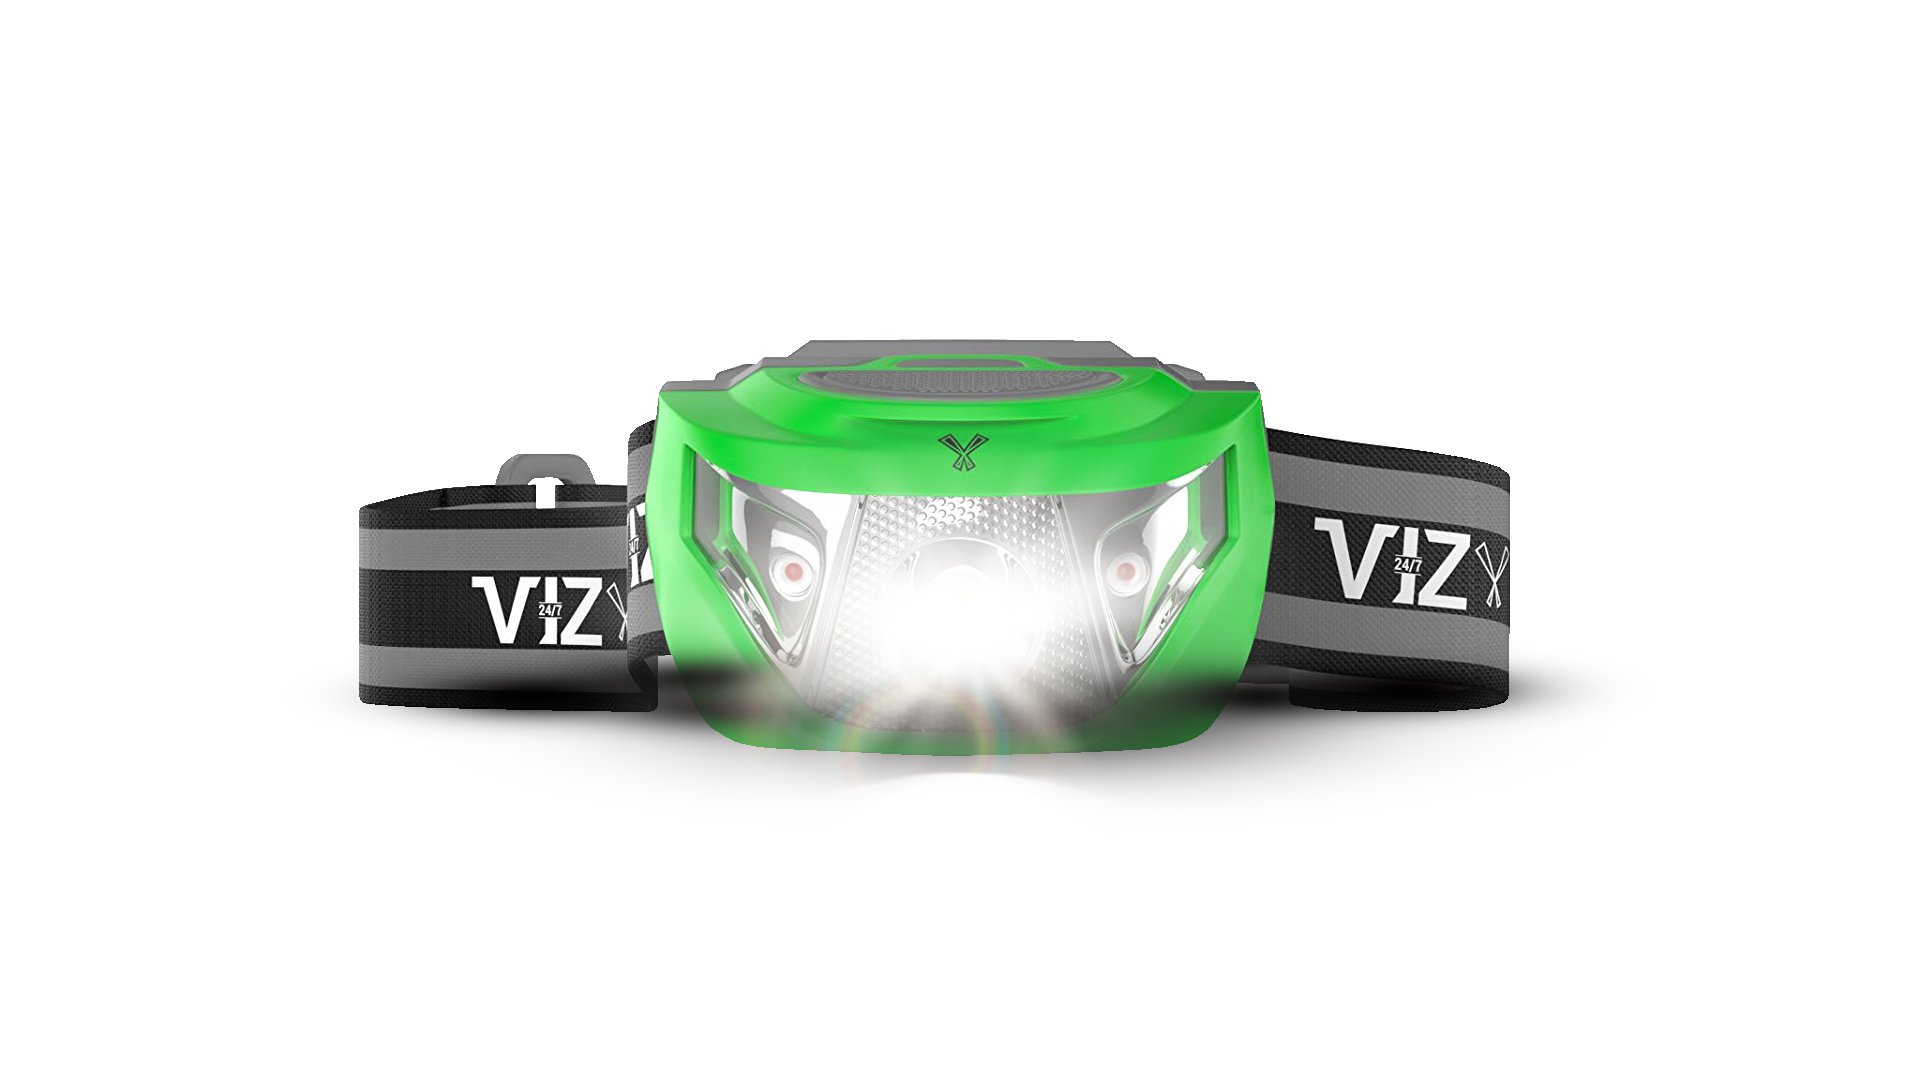 247 Viz LED Headlamp Flashlight - See the Road and Stay Safe - 3 Bright White & 2 Red Lights - Running, Hiking, Camping, Dog Walking and Night Safety for Kids - Lightweight & Waterproof